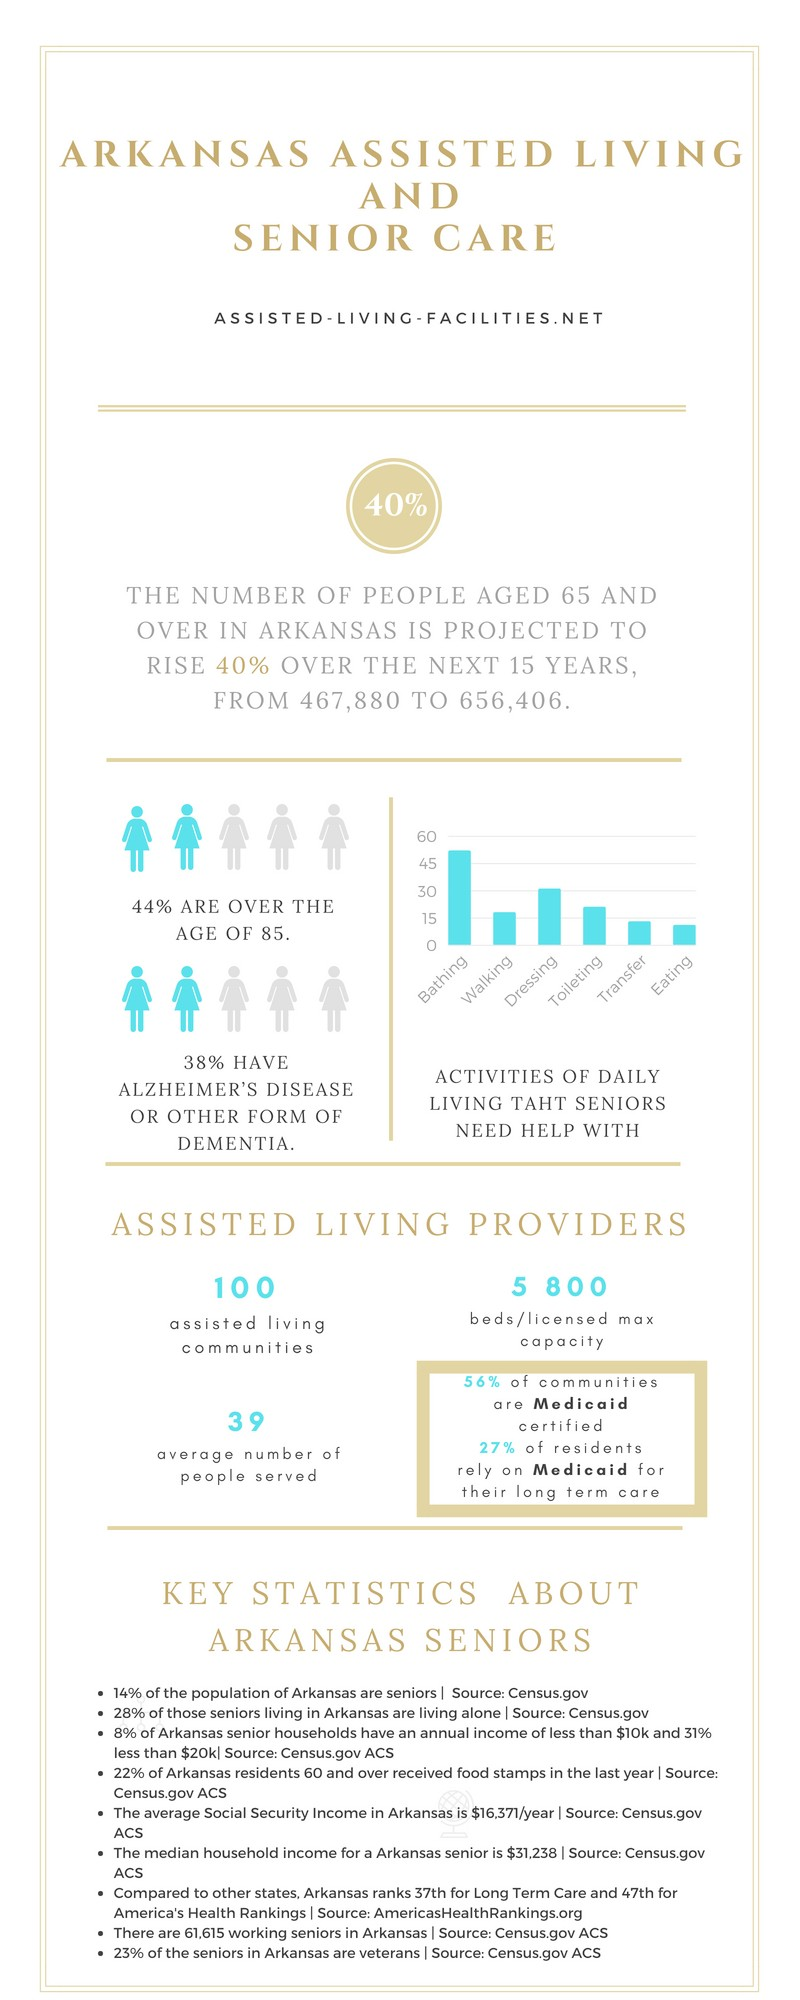 Arkansas assisted living and senior living